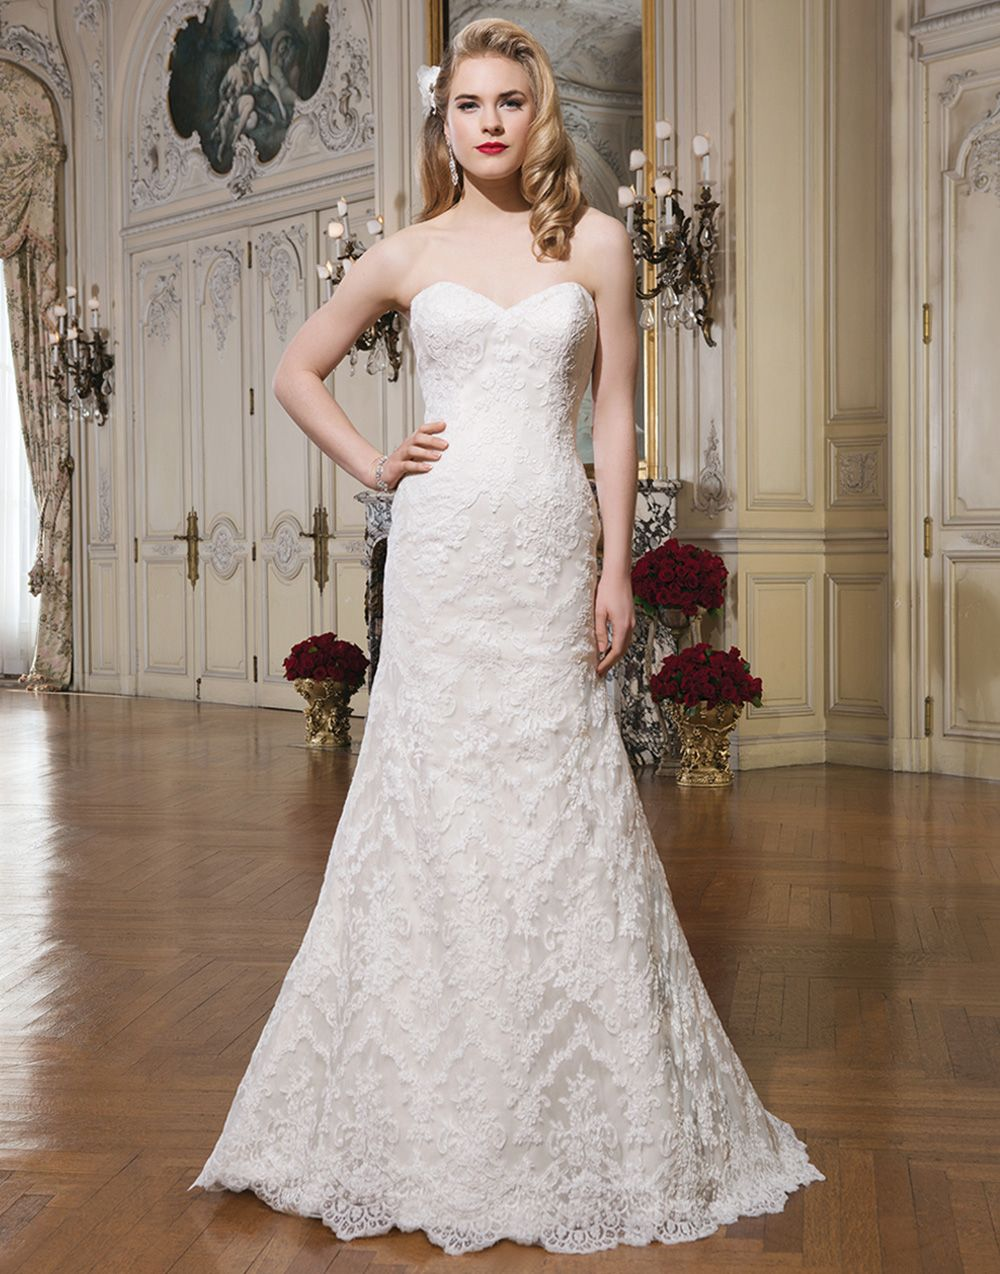 Fit and flare dress wedding  Justin Alexander wedding dress style  Alencon lace fit and flare